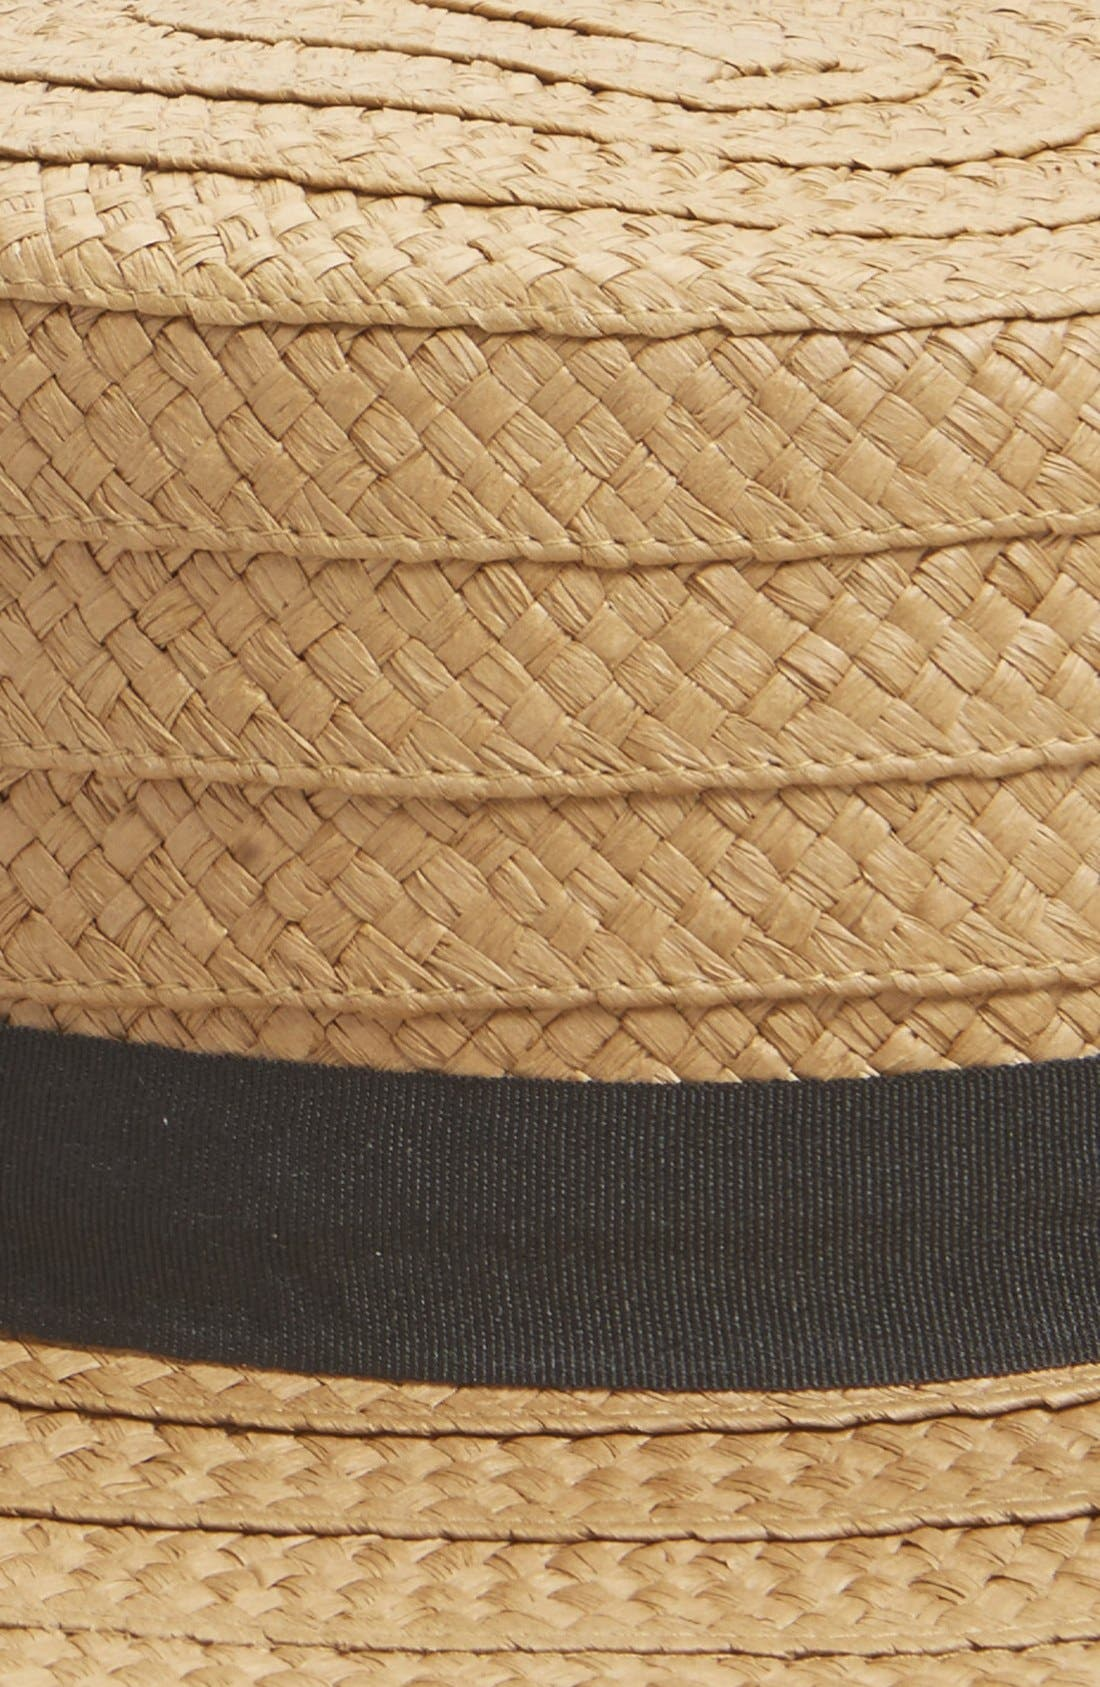 Straw Boater Hat,                             Alternate thumbnail 3, color,                             Natural